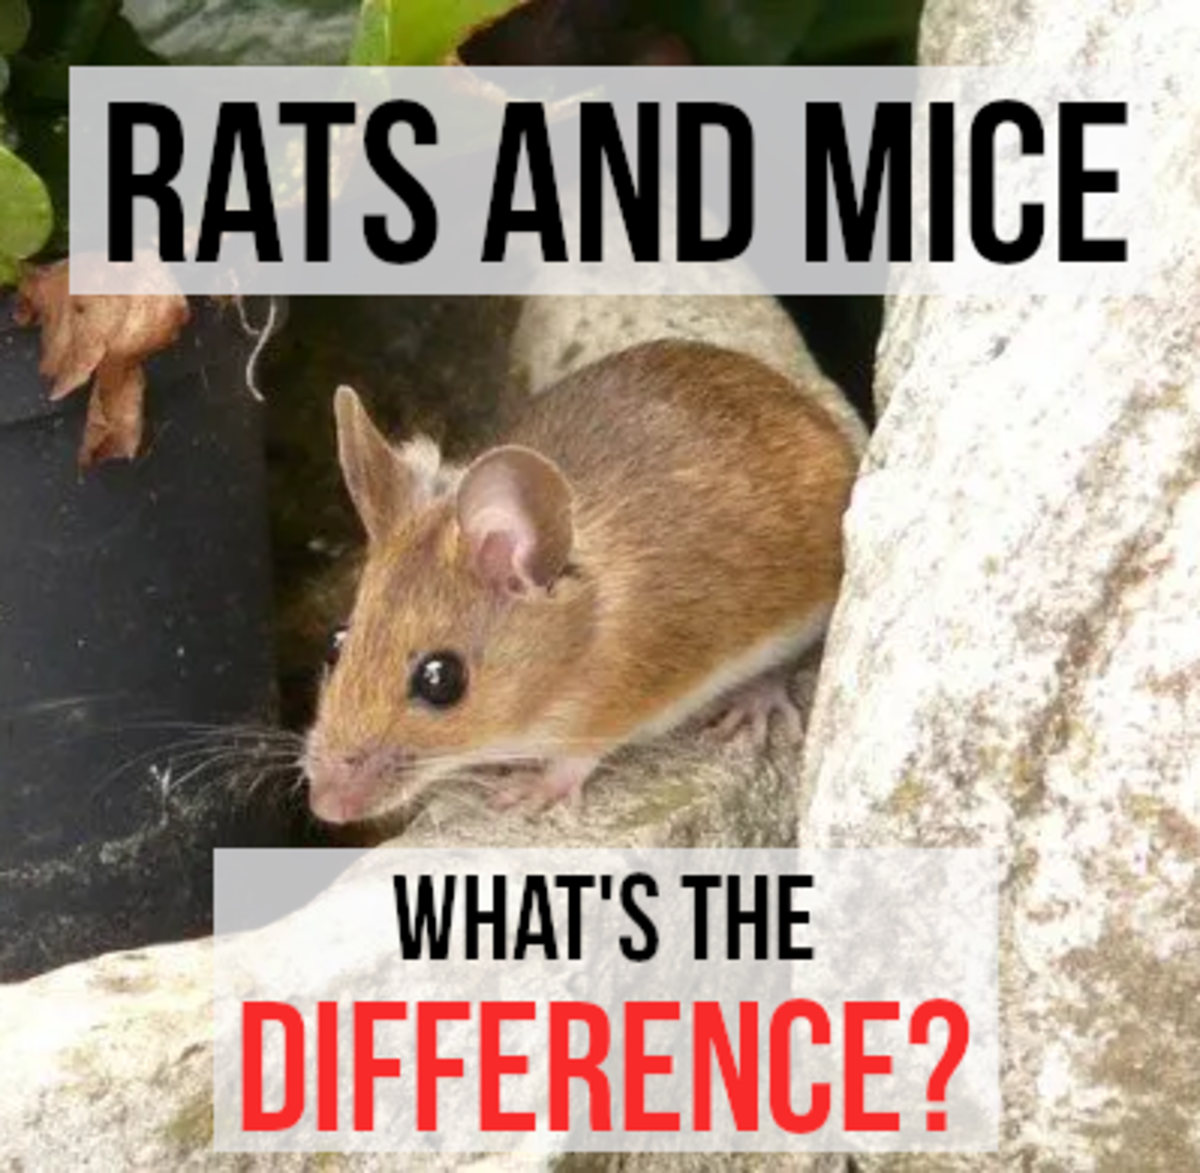 What's the Difference Between a Rat and a Mouse?